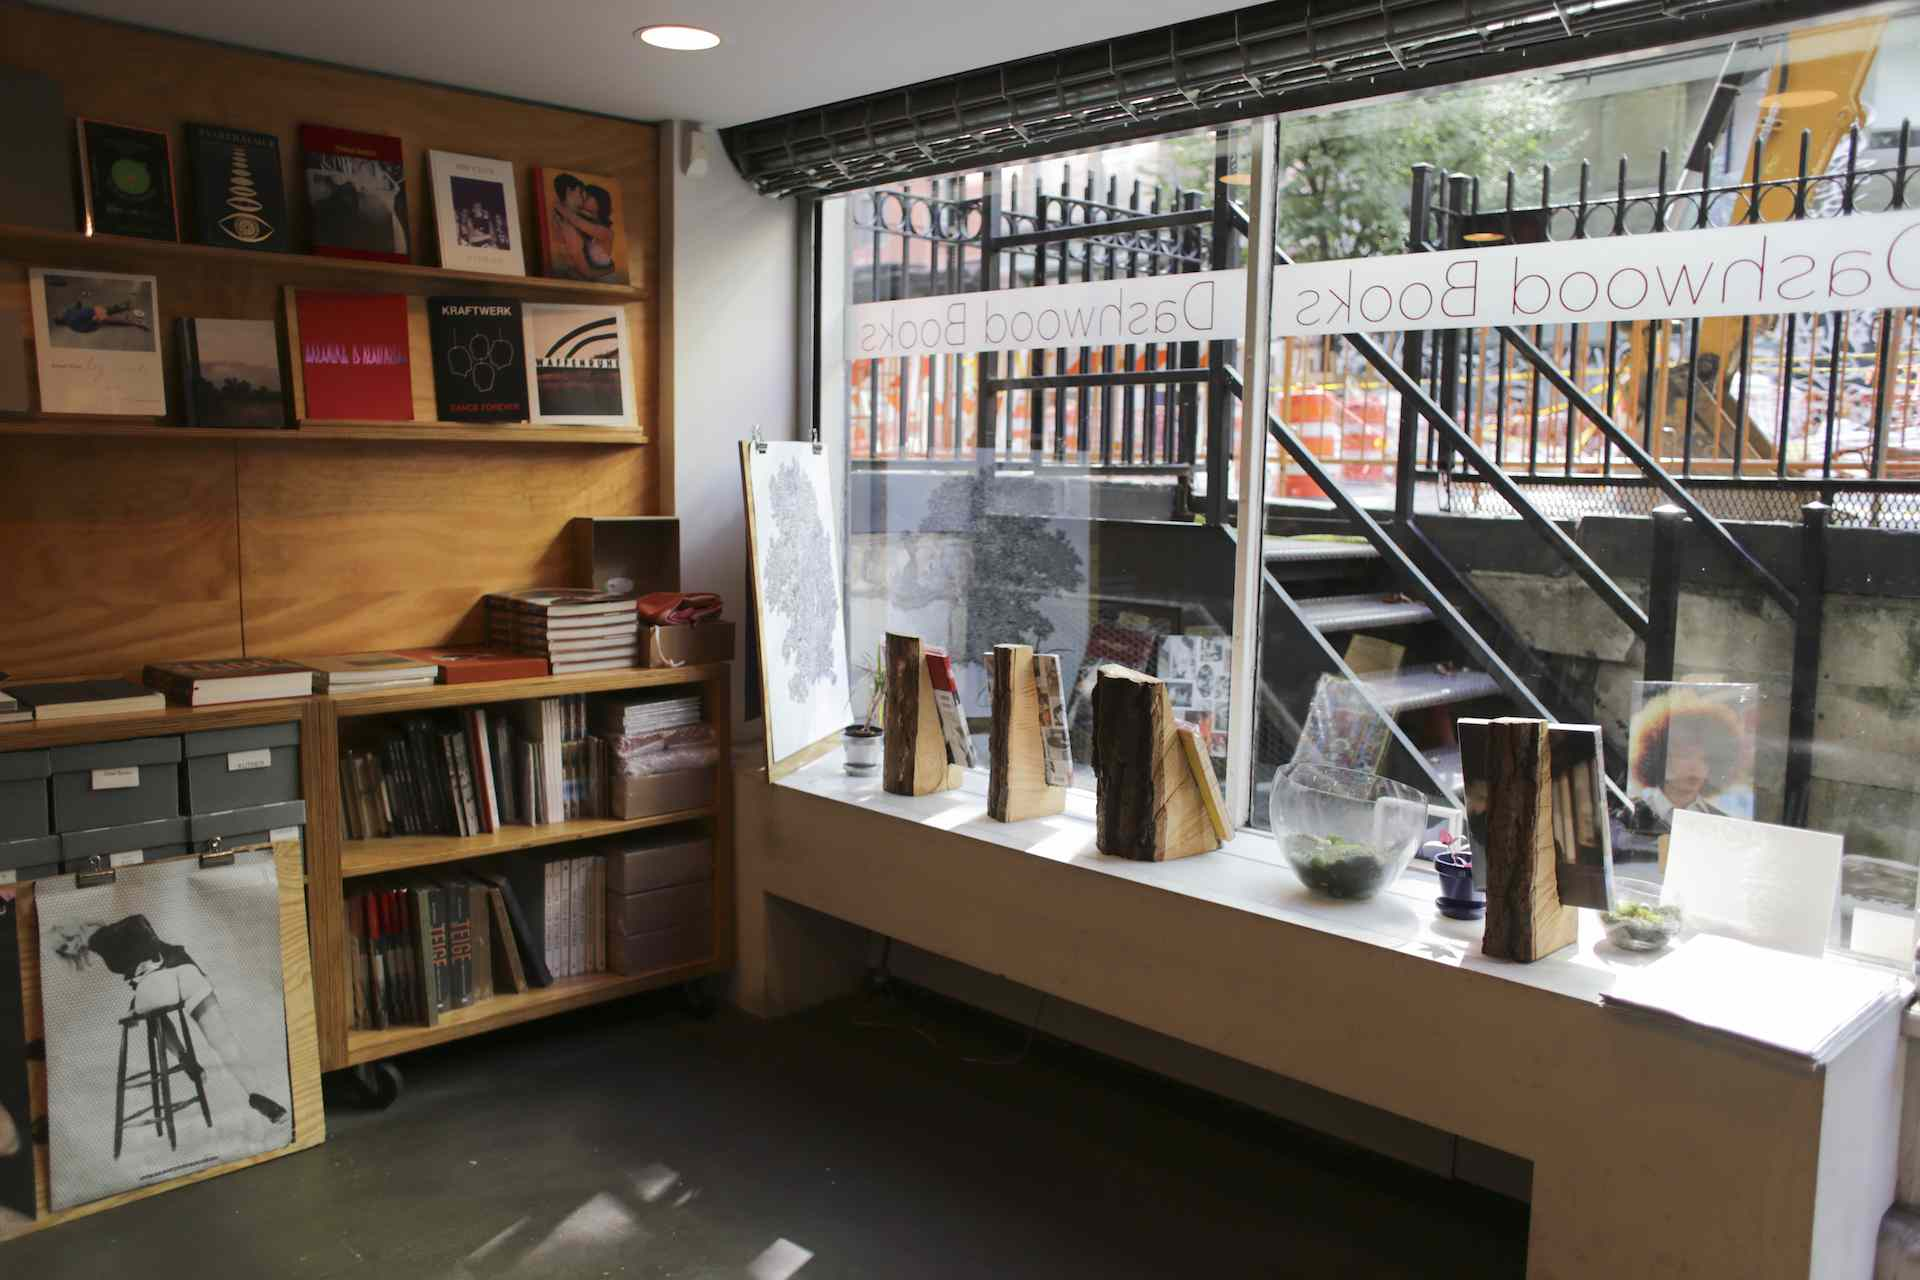 interior of a basement-level bookstore with a view out the windows